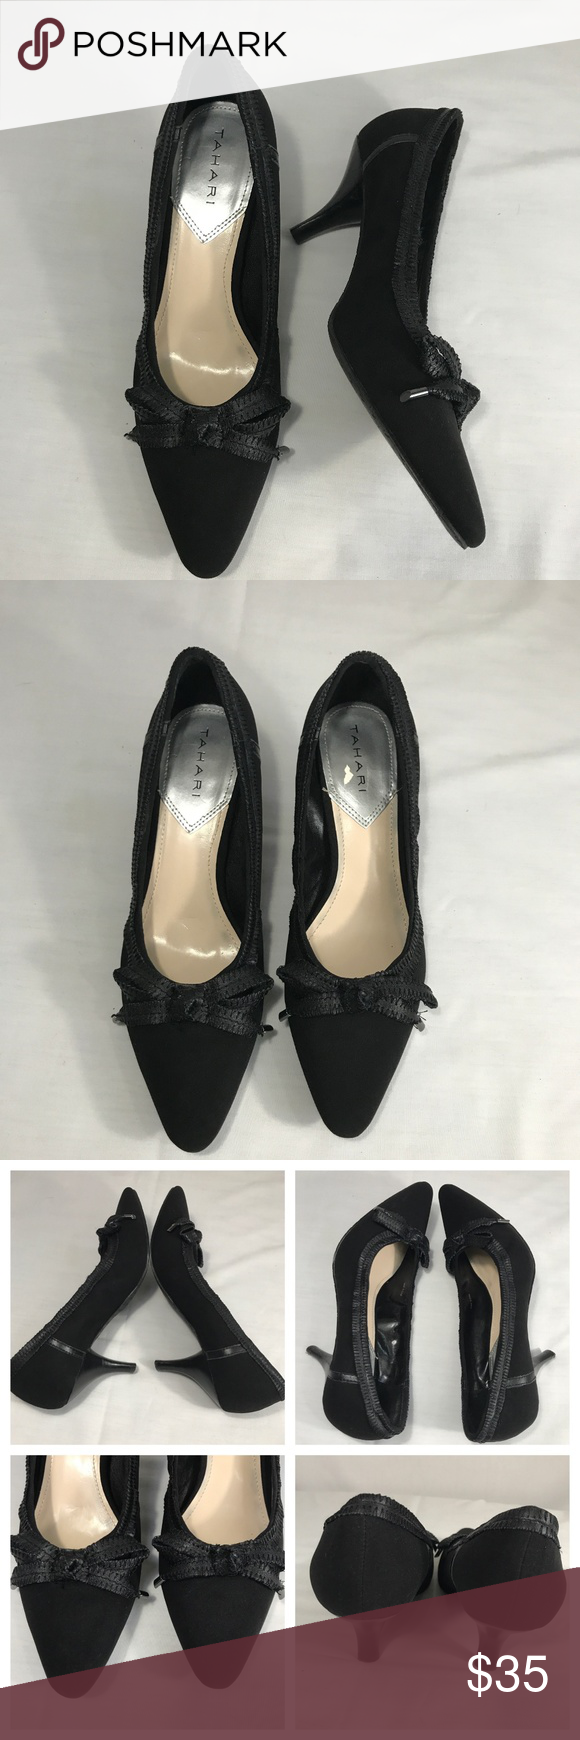 5c7302840b5 Tahari Bess Kitten Heel Pointy Toe Black Pump 9 Style - Tahari Bess - Low  Kitten